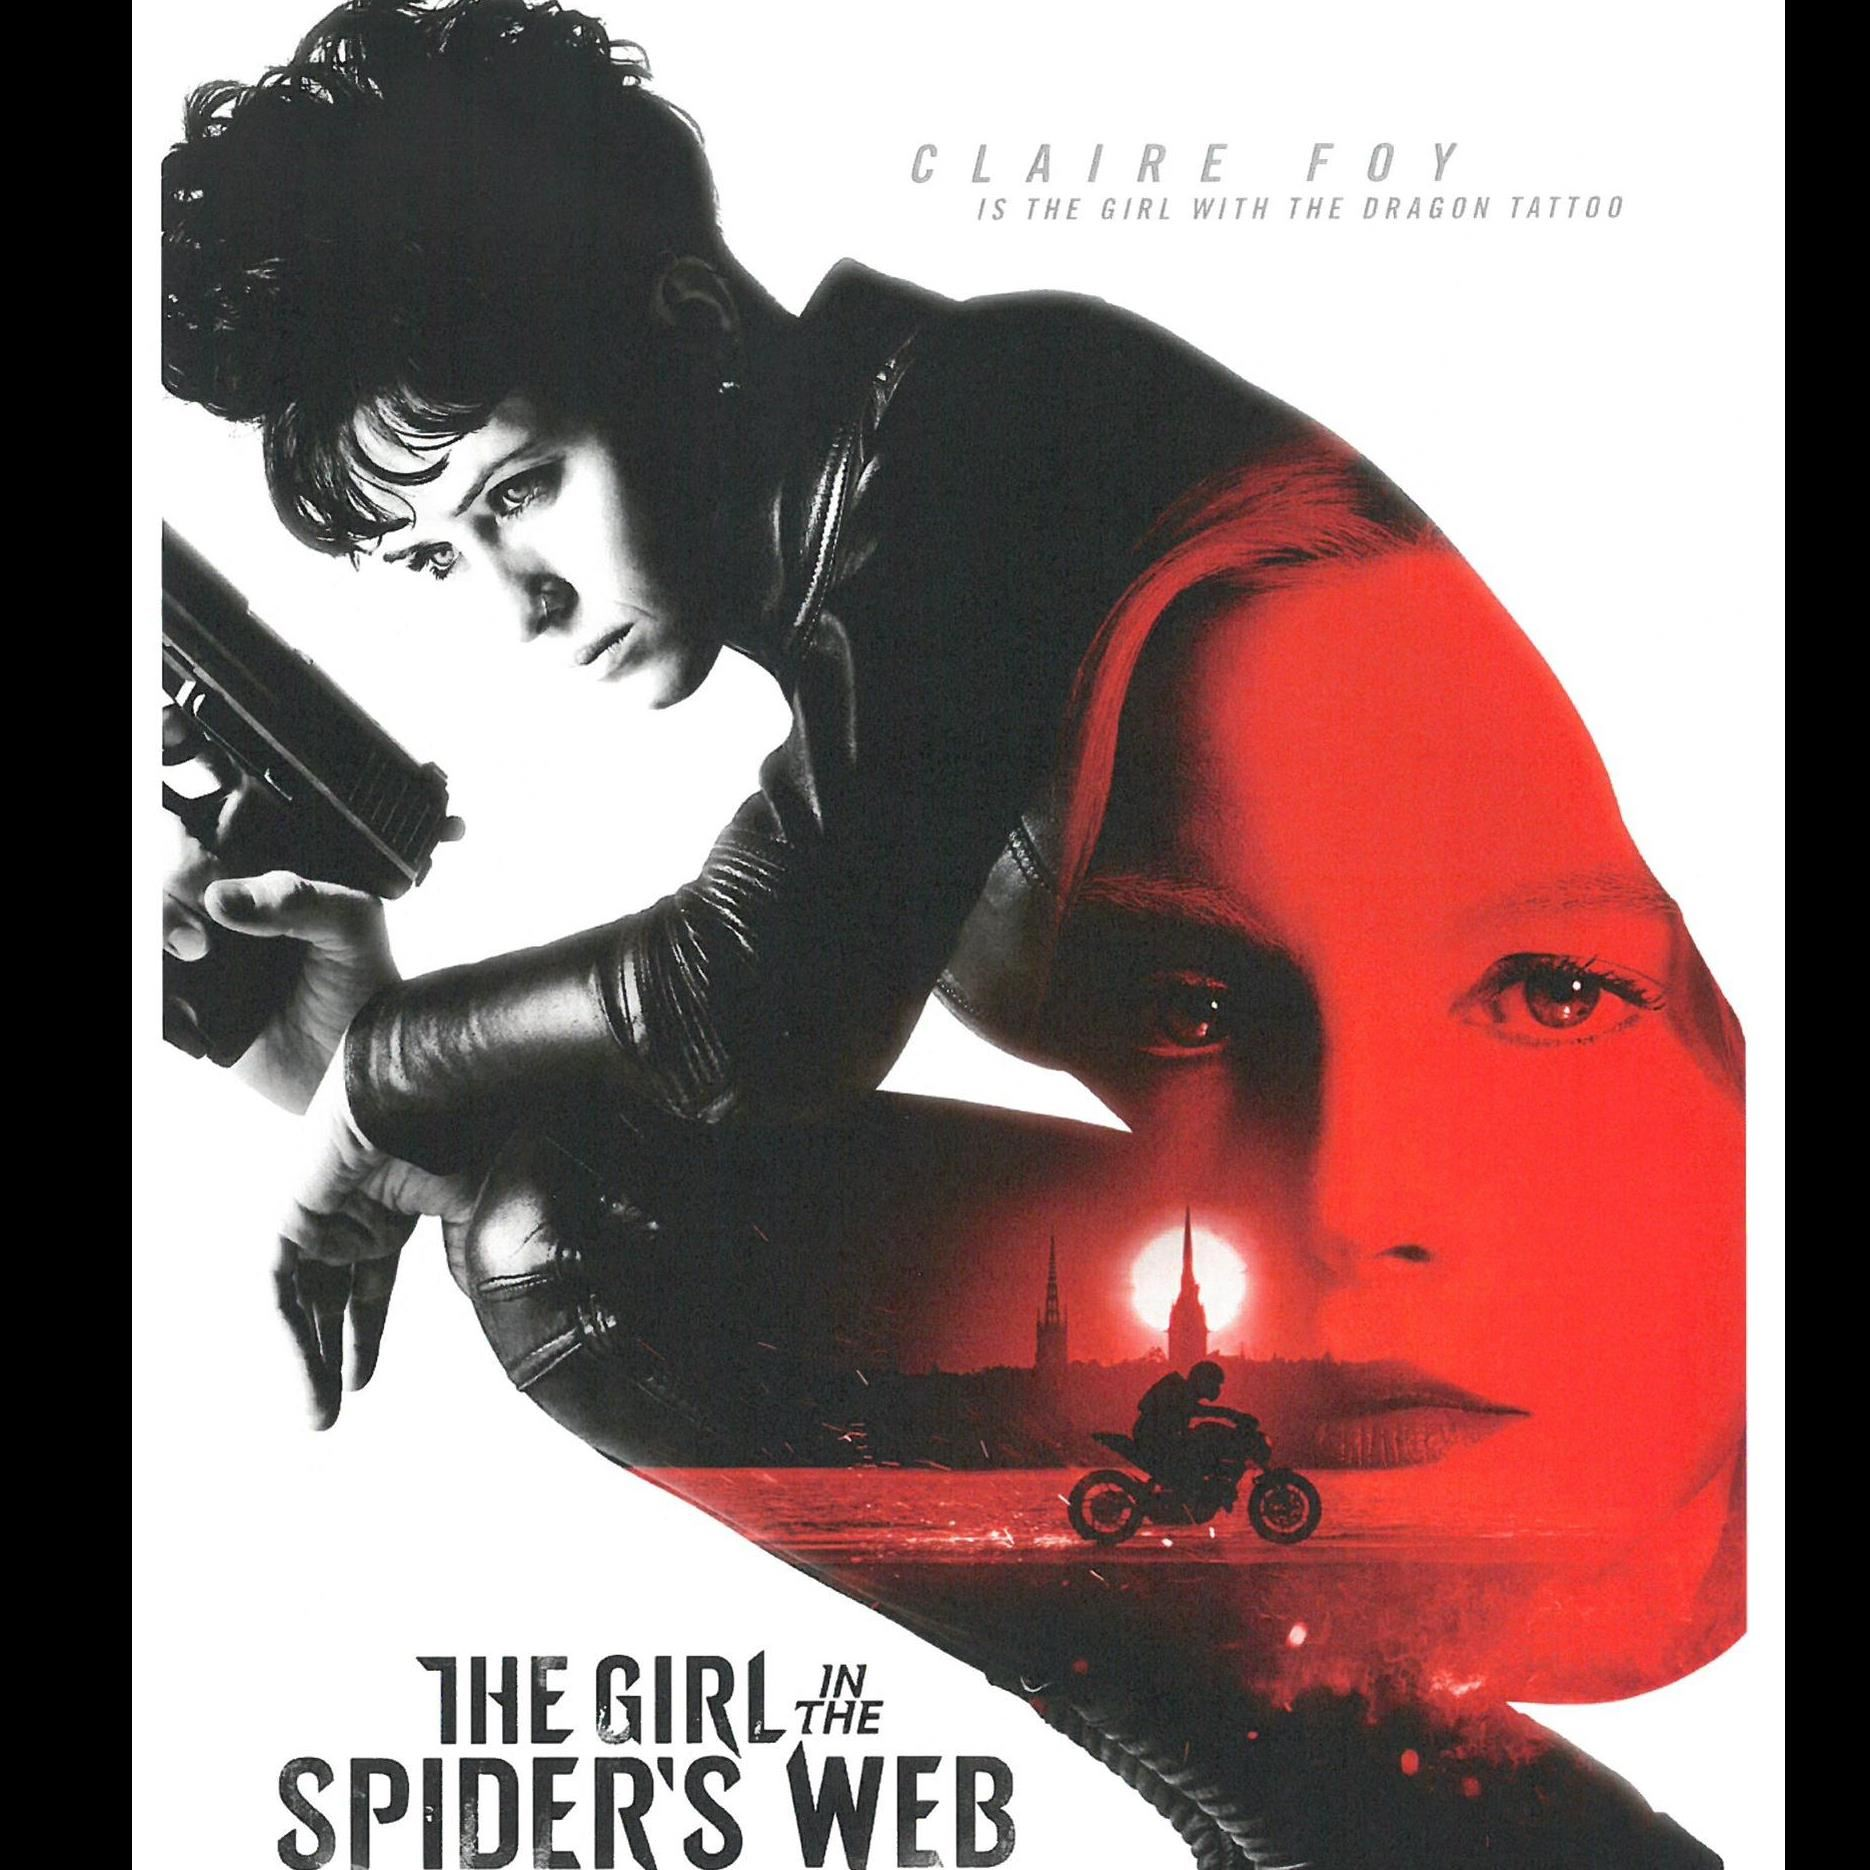 Bio - The Girl In The Spiders Web